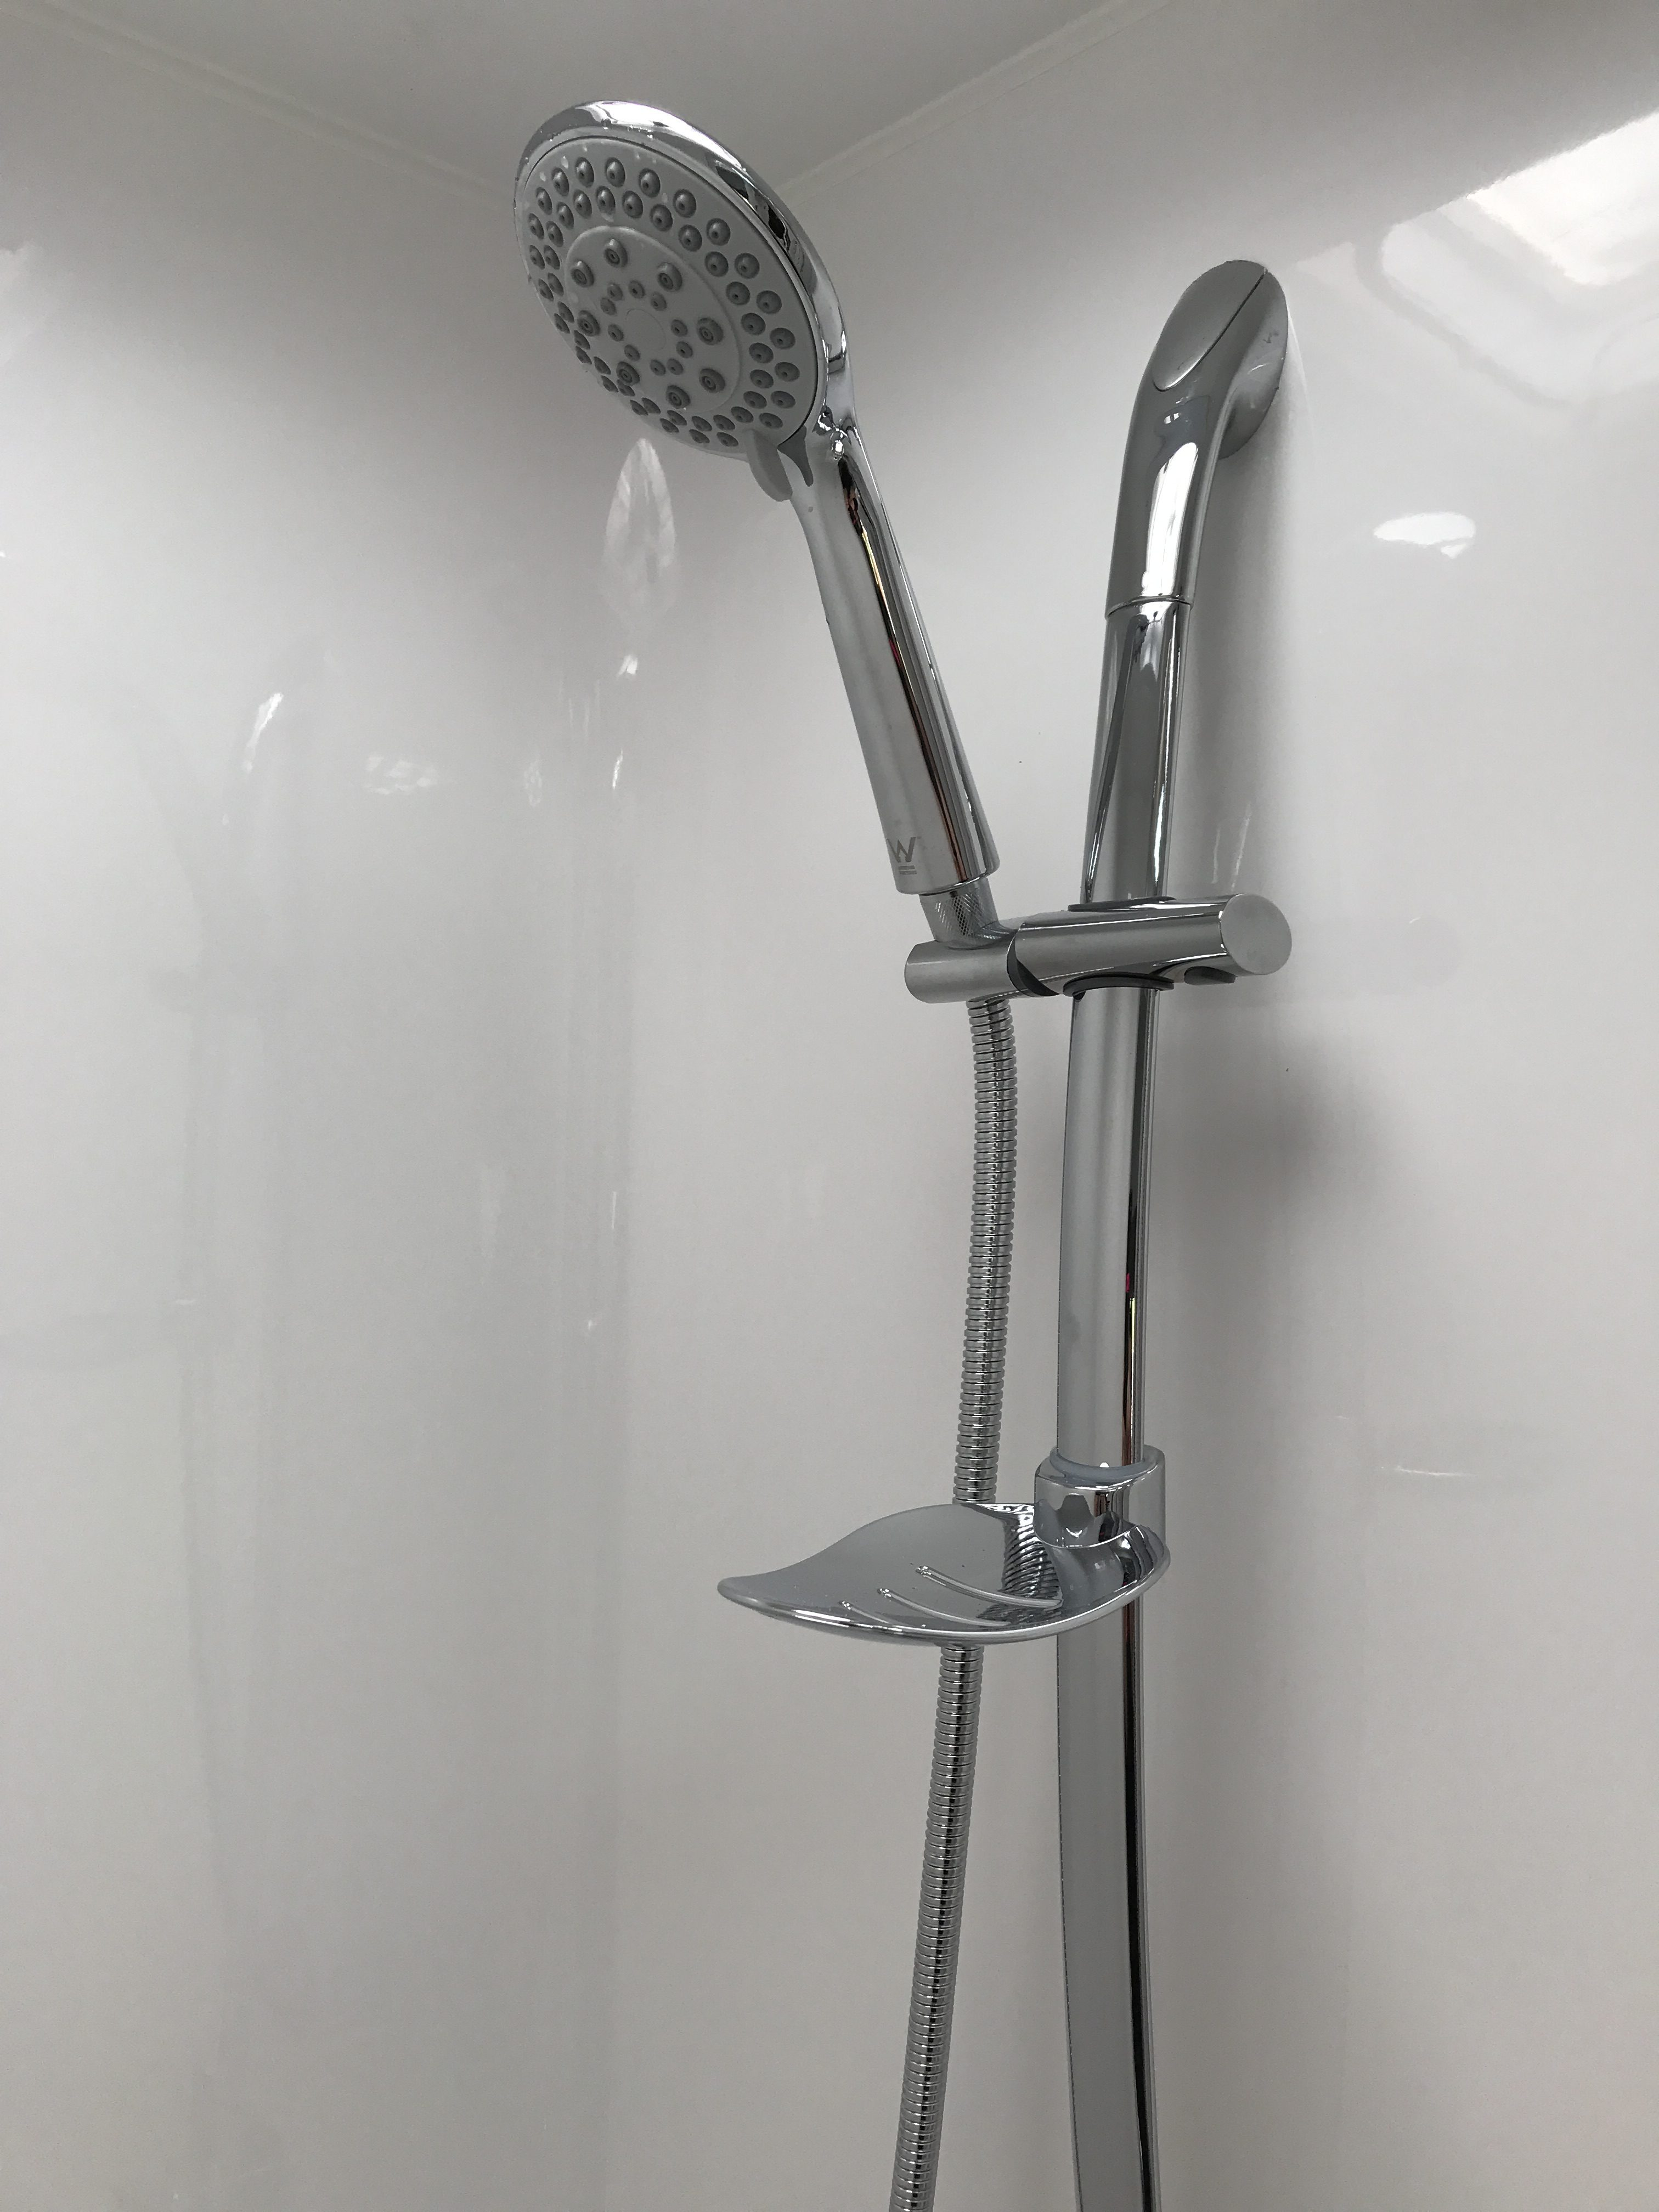 Royal Flair PD Series shower